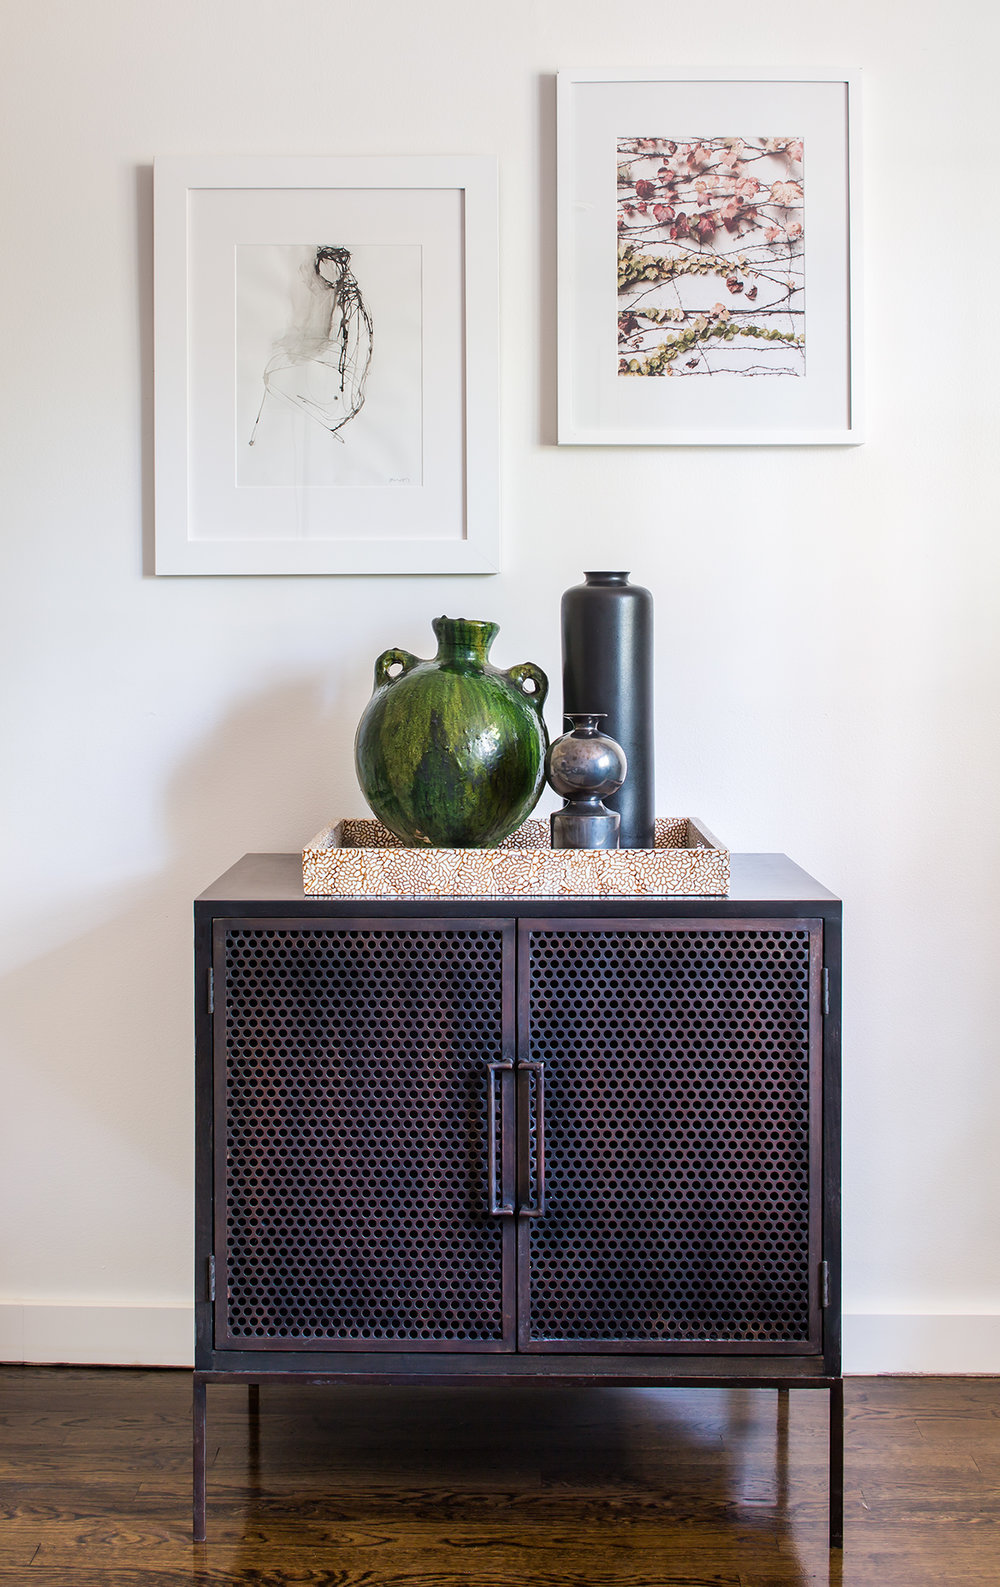 bkd office vignette | jeff herr photography